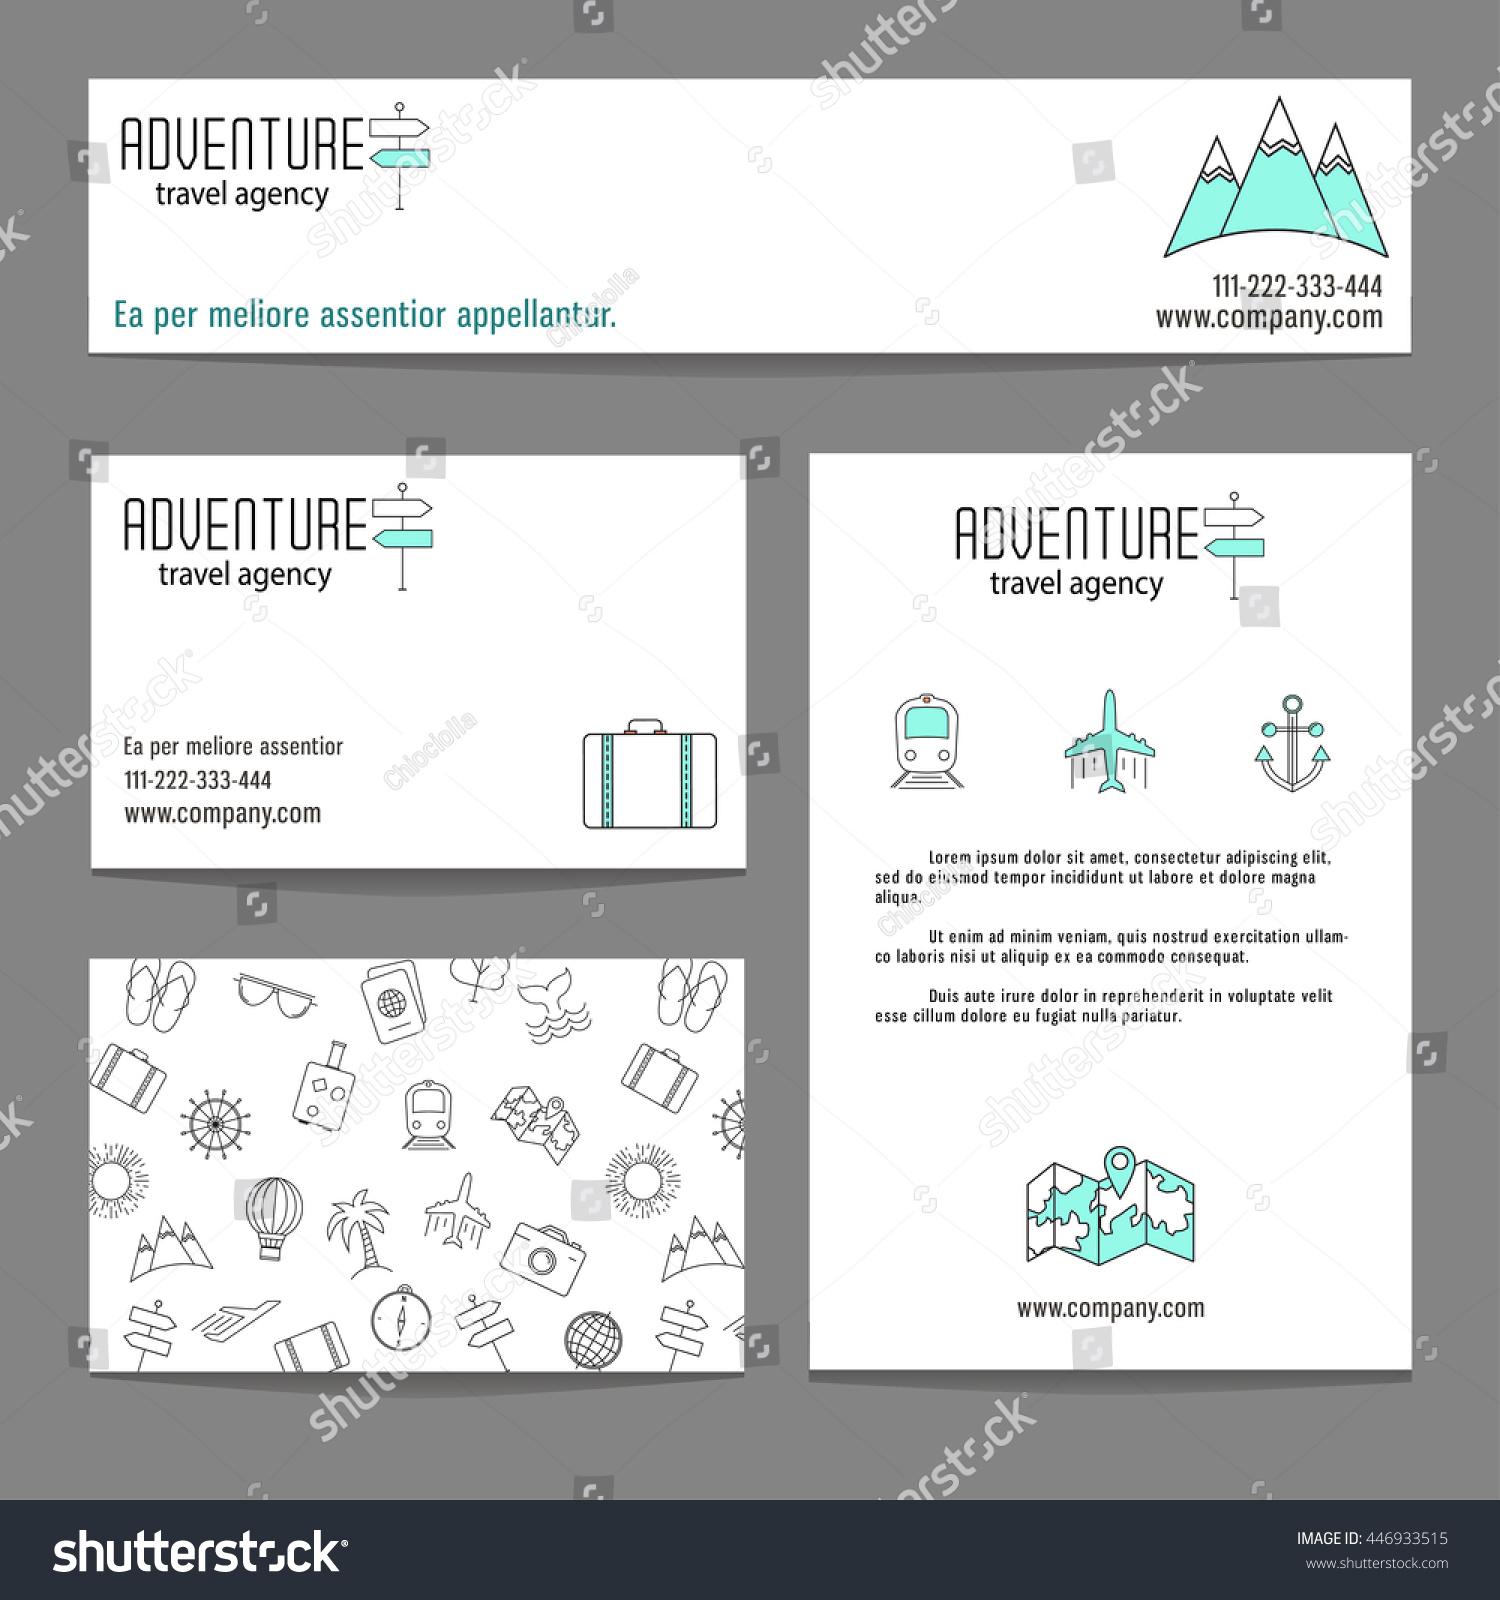 Travel business cards templates modern style stock vector travel business cards templates with modern style thin line elements magicingreecefo Choice Image